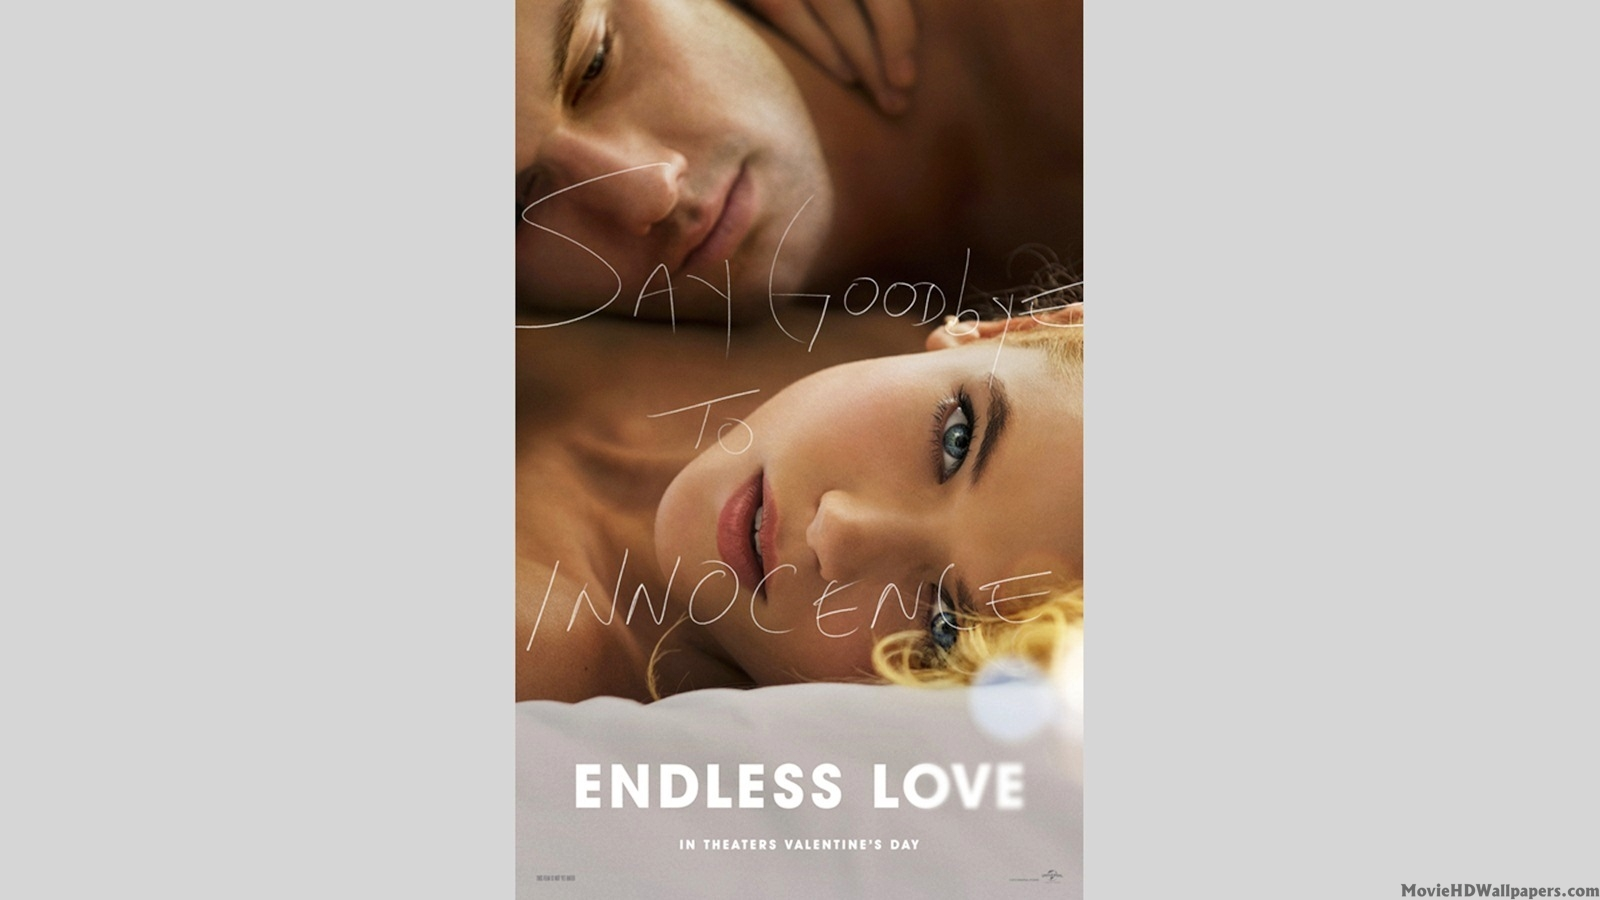 Endless Love (2014) - Movie HD Wallpapers